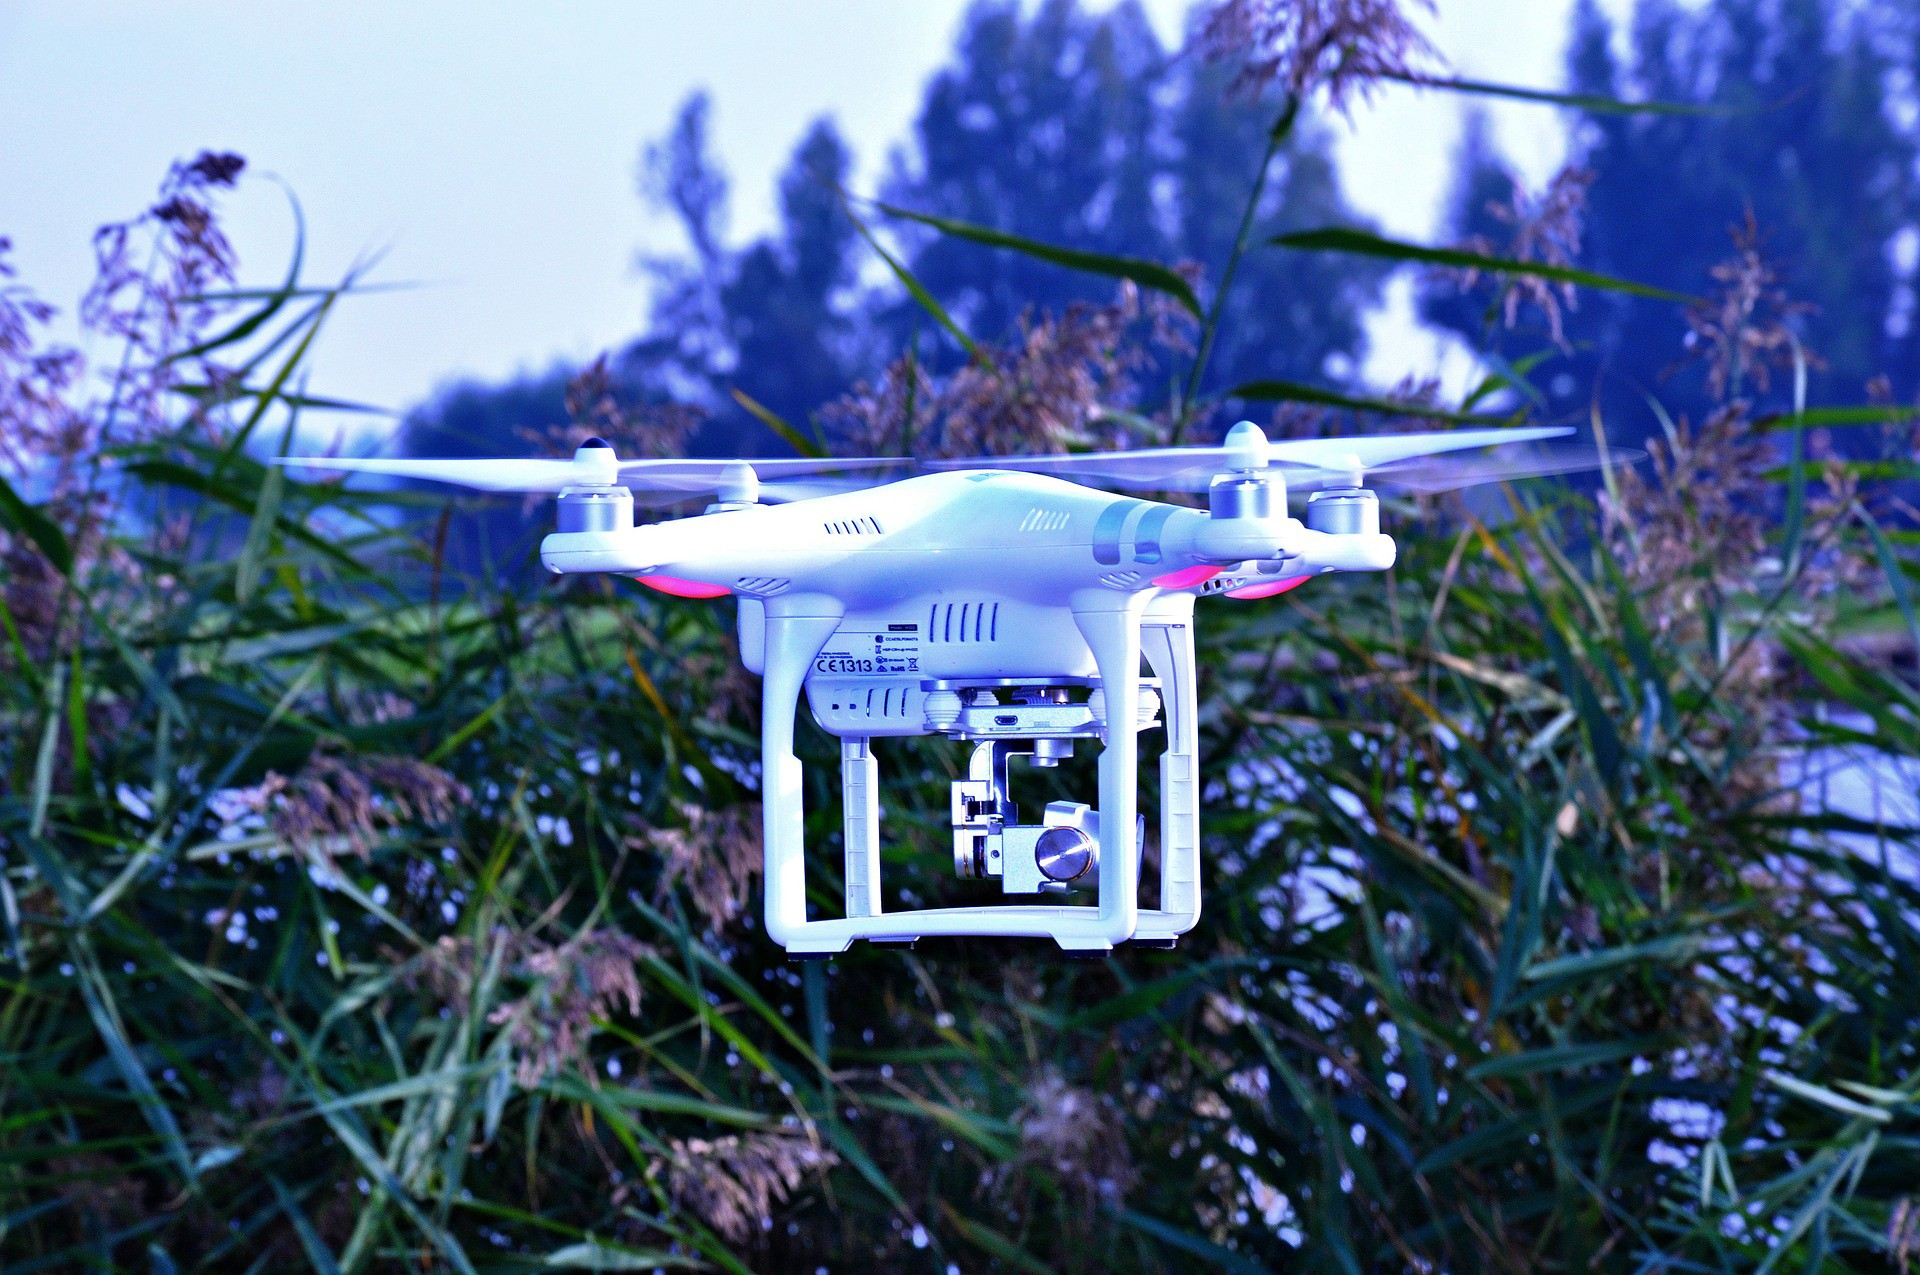 Pleasure and Business Merge, Here Are 5 Industries Drone